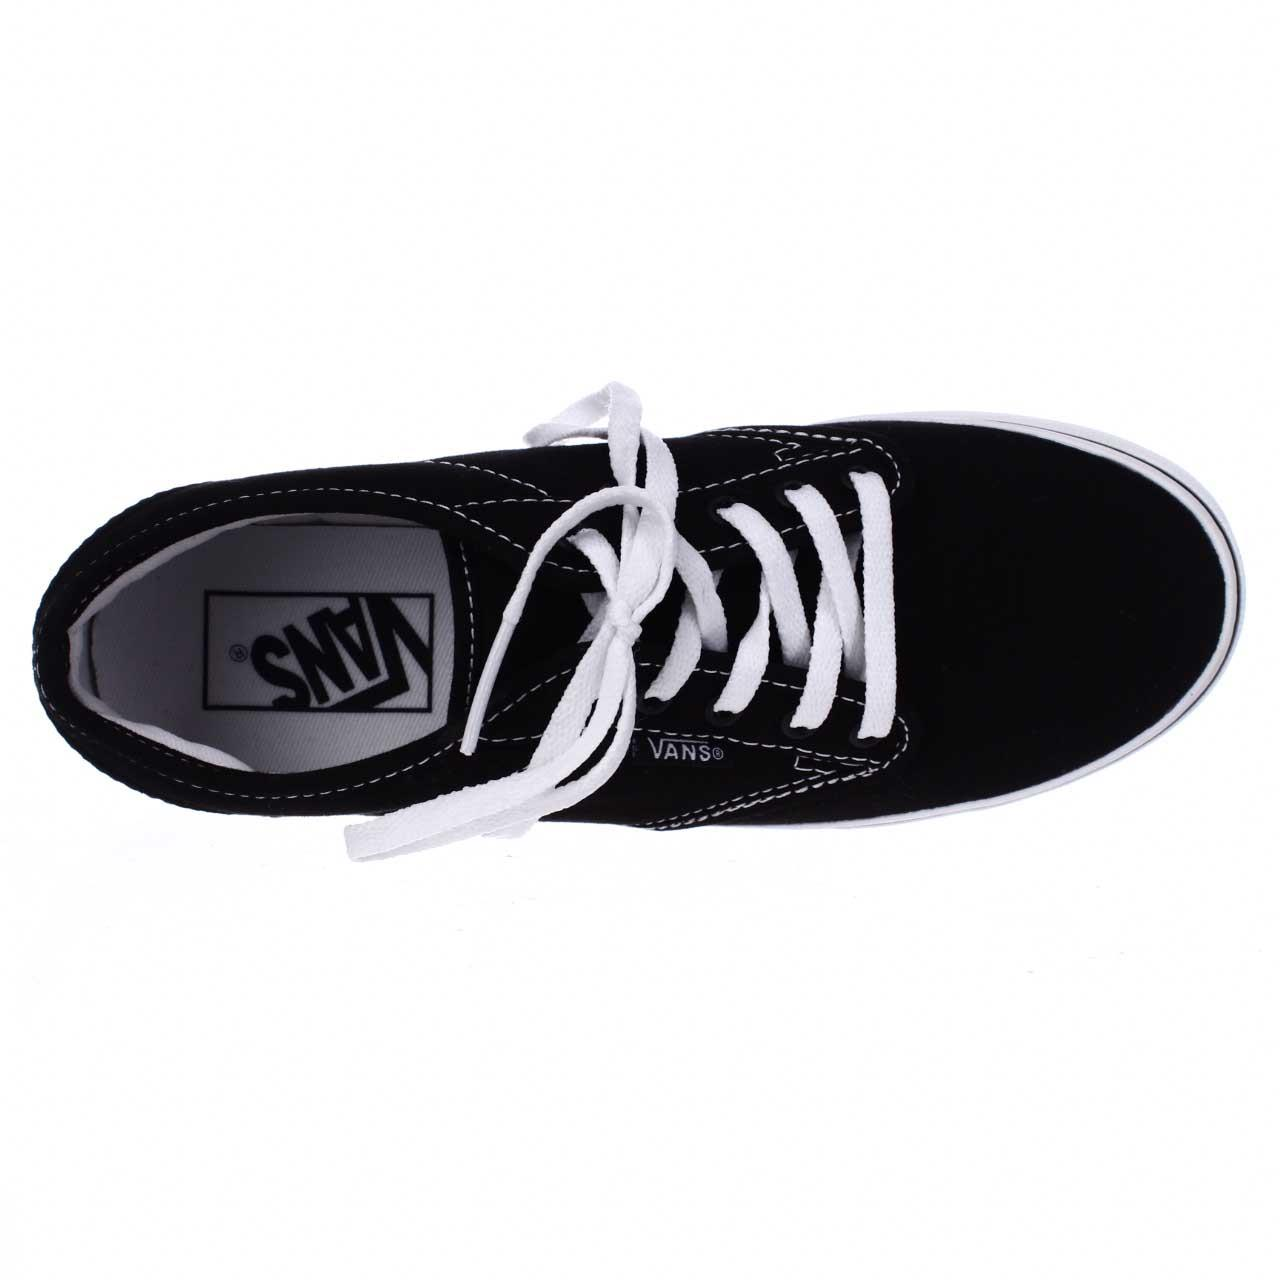 Vans Women's Atwood Low (Canvas) Casual Shoe